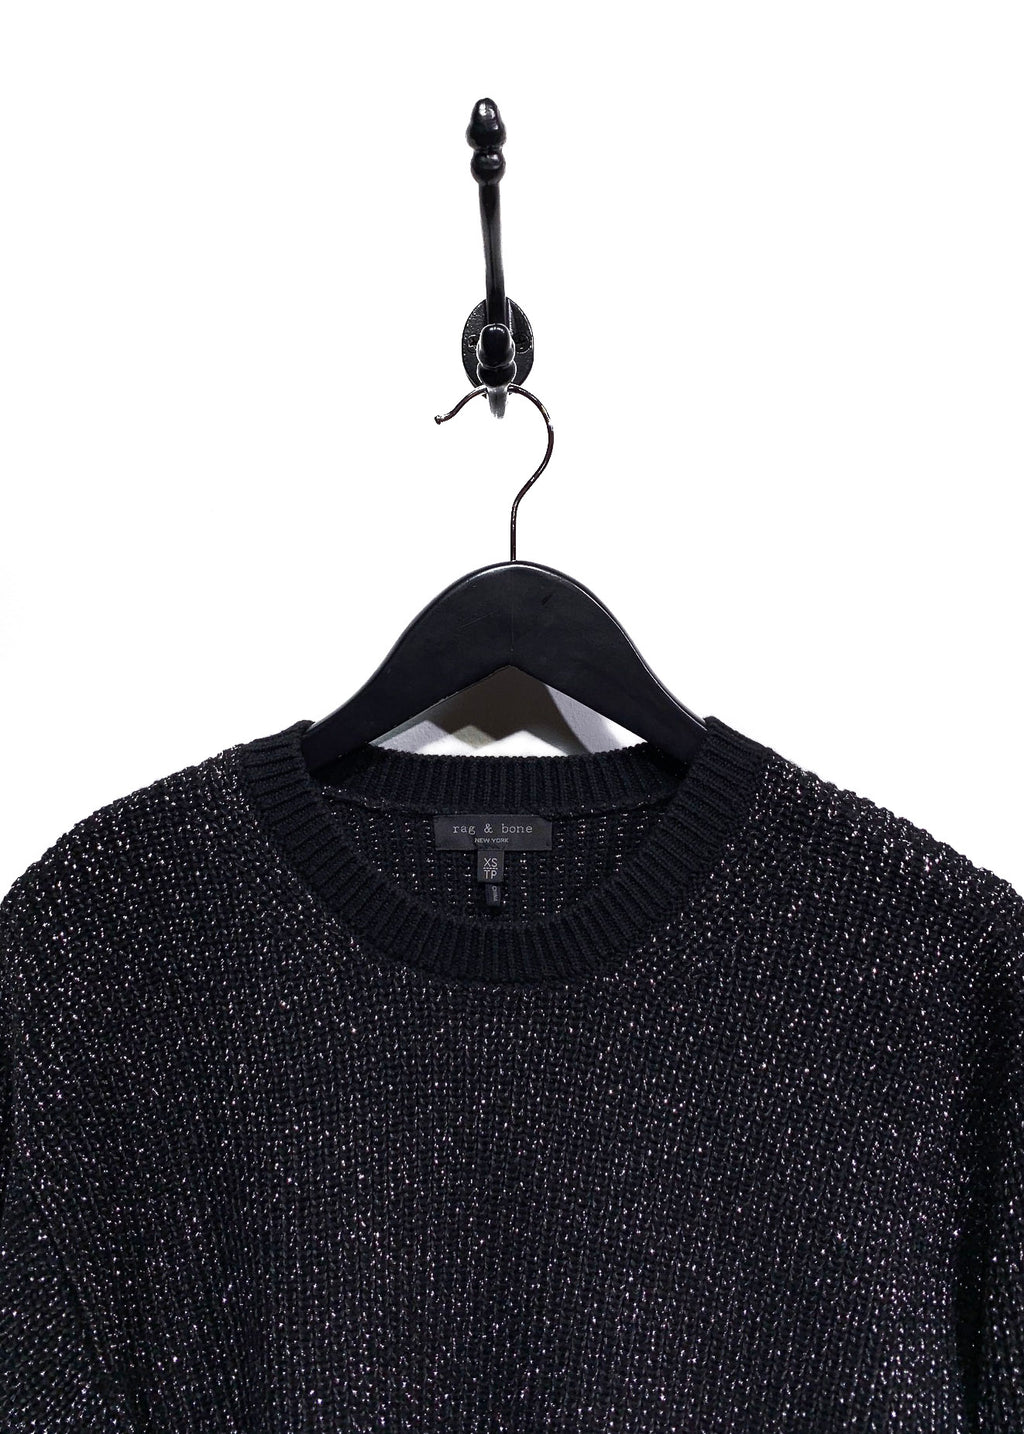 Rag & Bone Black Silver Lurex Cropped Knit Sweater